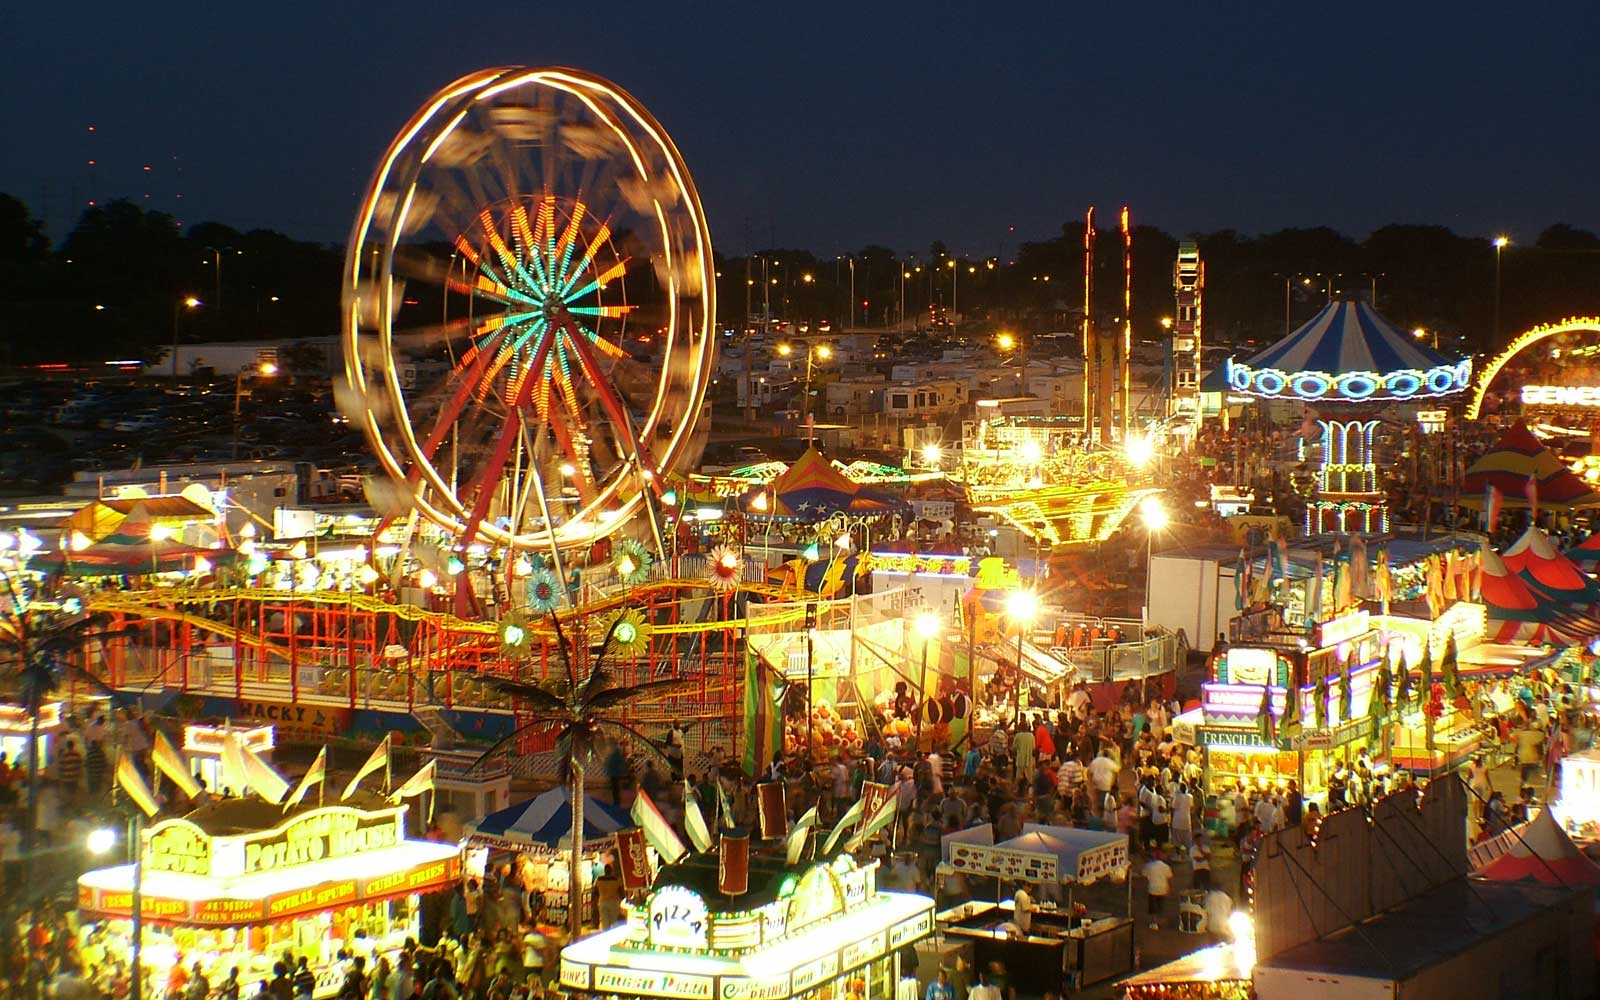 State Fair grounds in Wisconsin